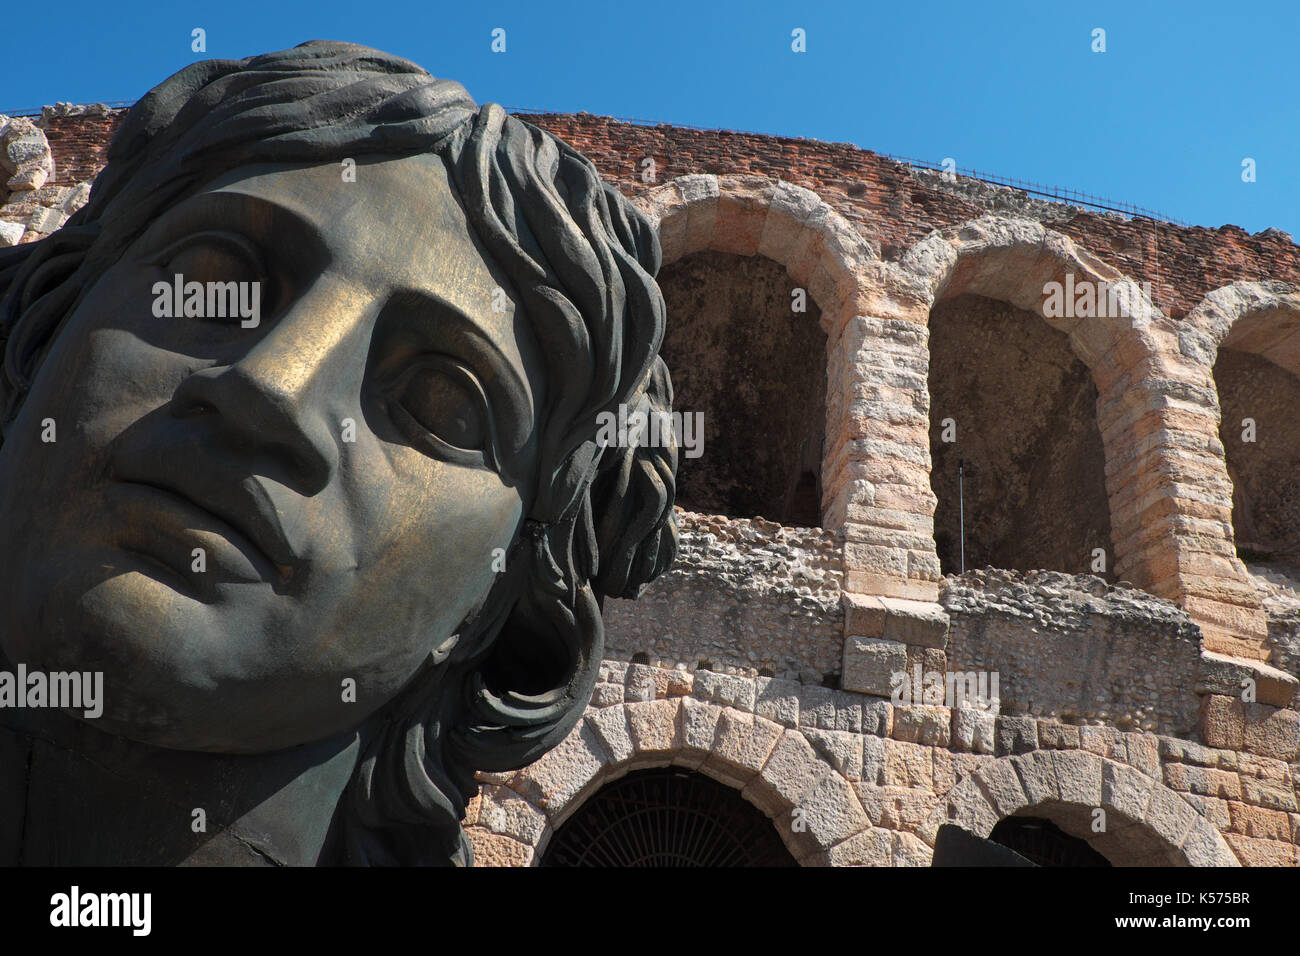 Verona Italy the Roman Arena with opera stage props outside - Stock Image